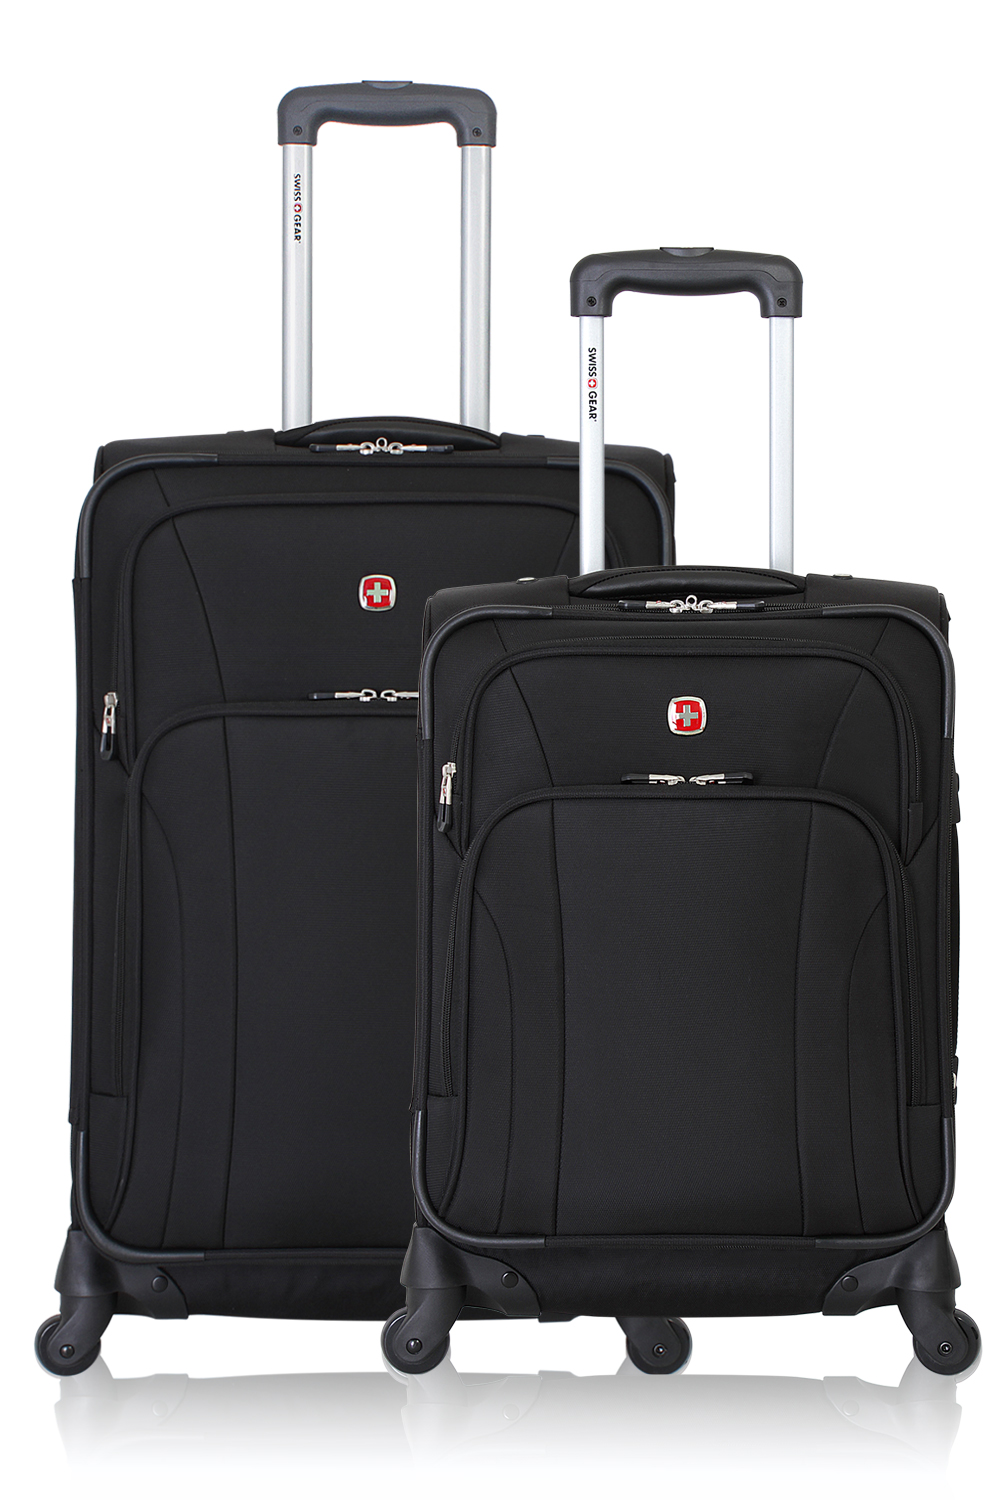 SWISSGEAR 7387 Expandable Spinner Luggage 2pc Set - Black